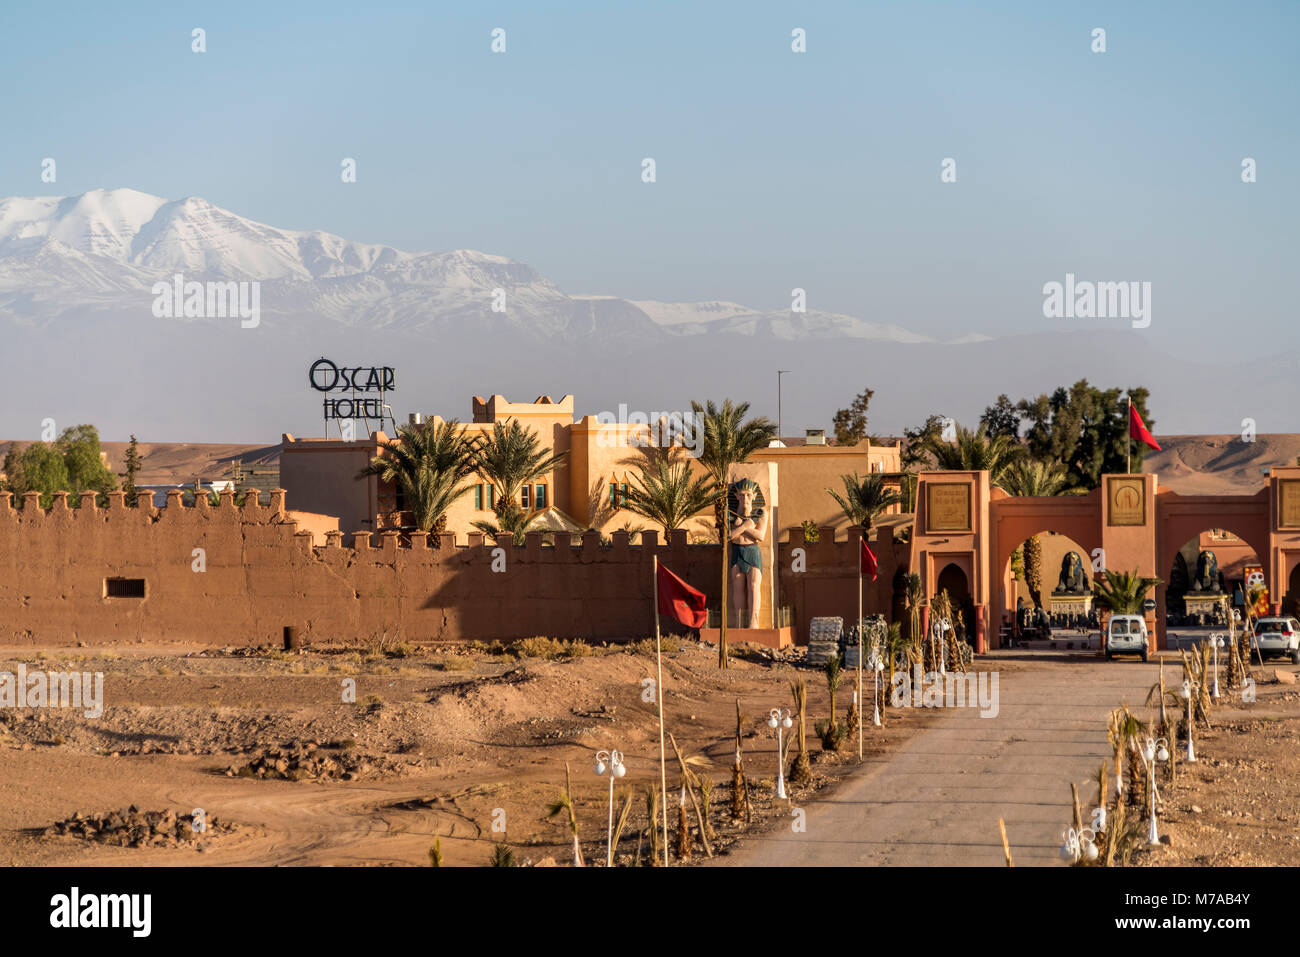 atlas corporation studios and oscar hotel ouarzazate morocco M7AB4Y